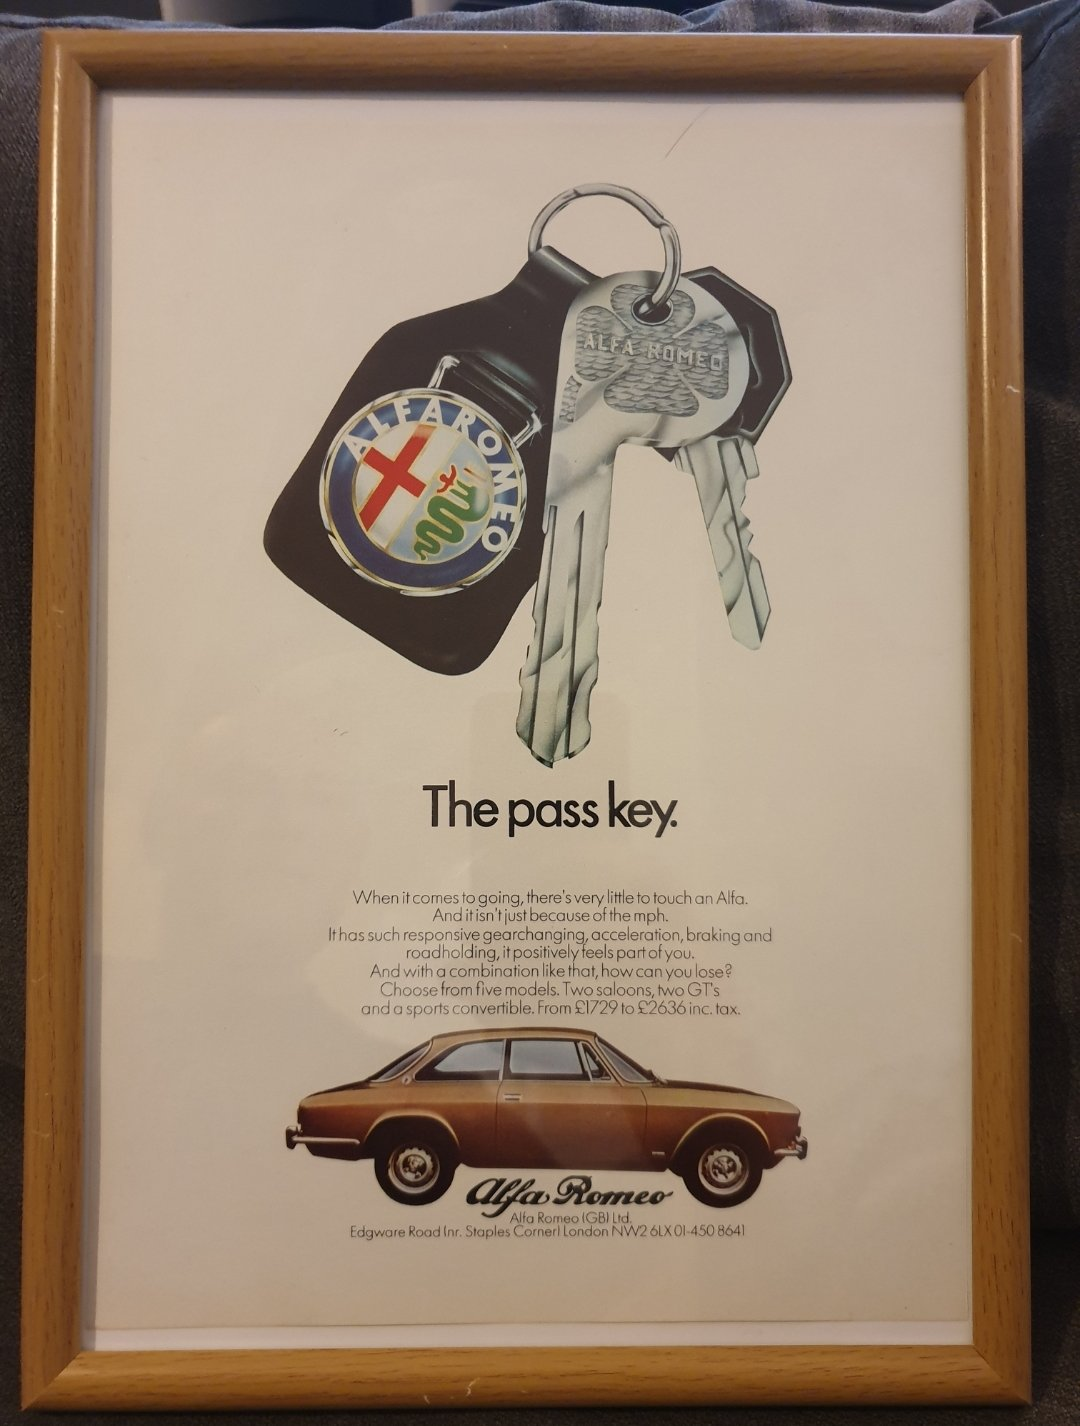 1973 Original Alfa Romeo Framed Advert For Sale (picture 1 of 2)